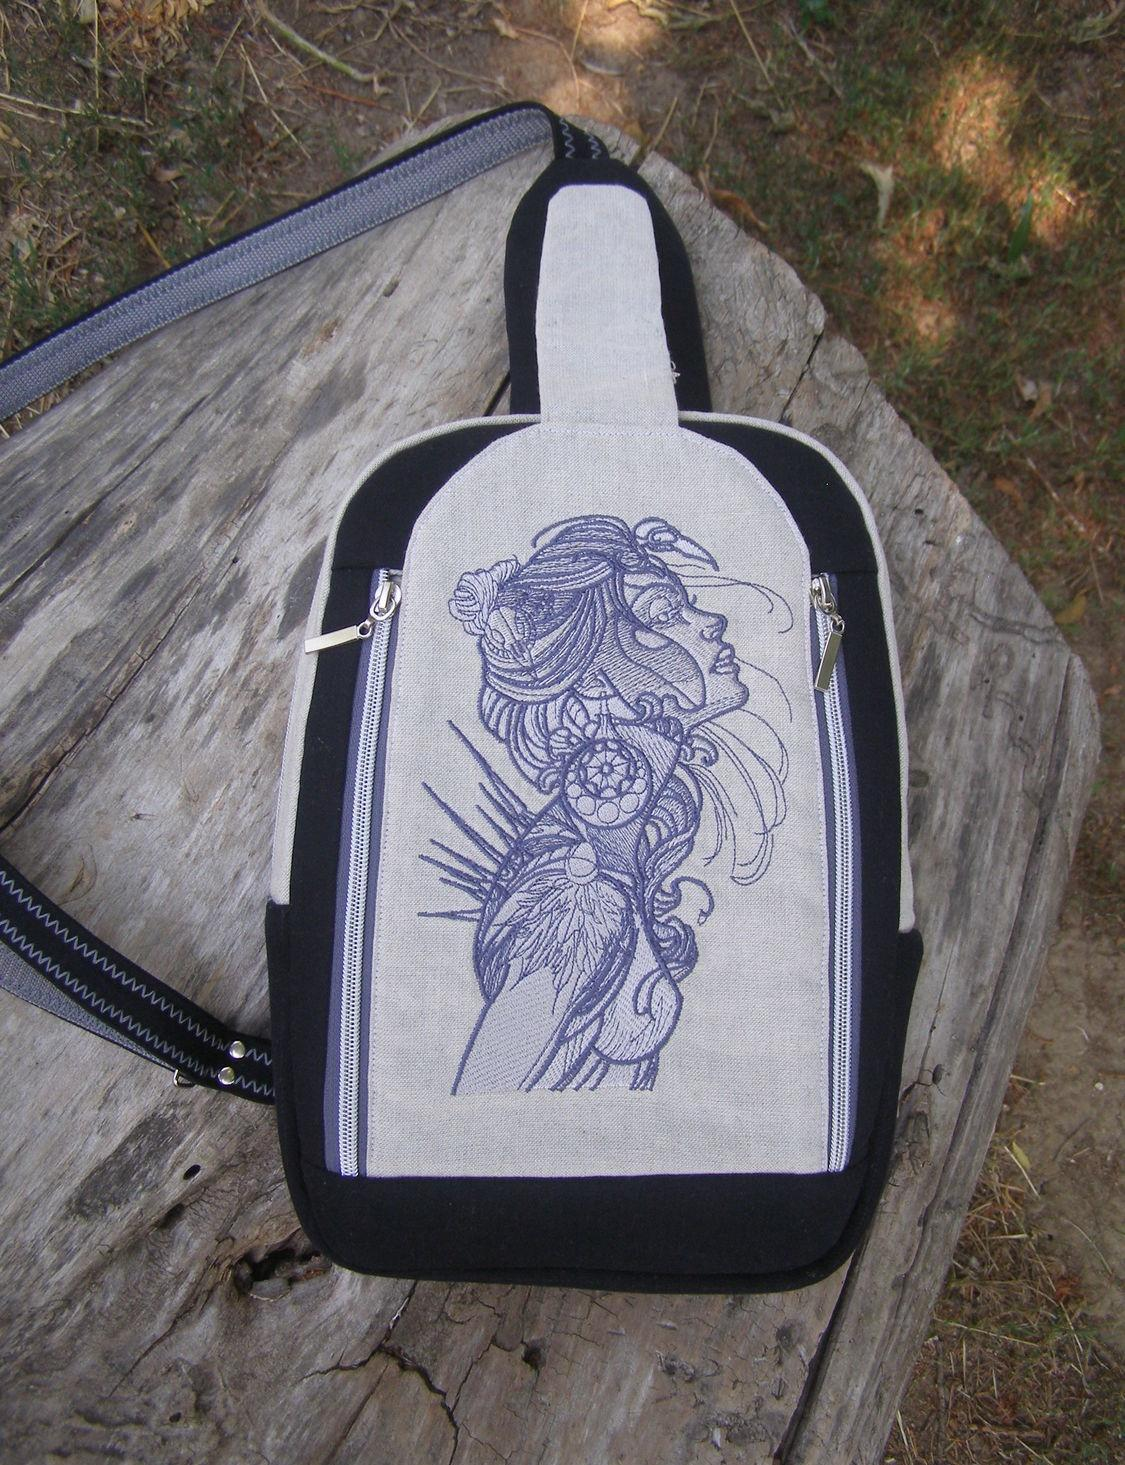 Embroidered backpack with exotic beauty design